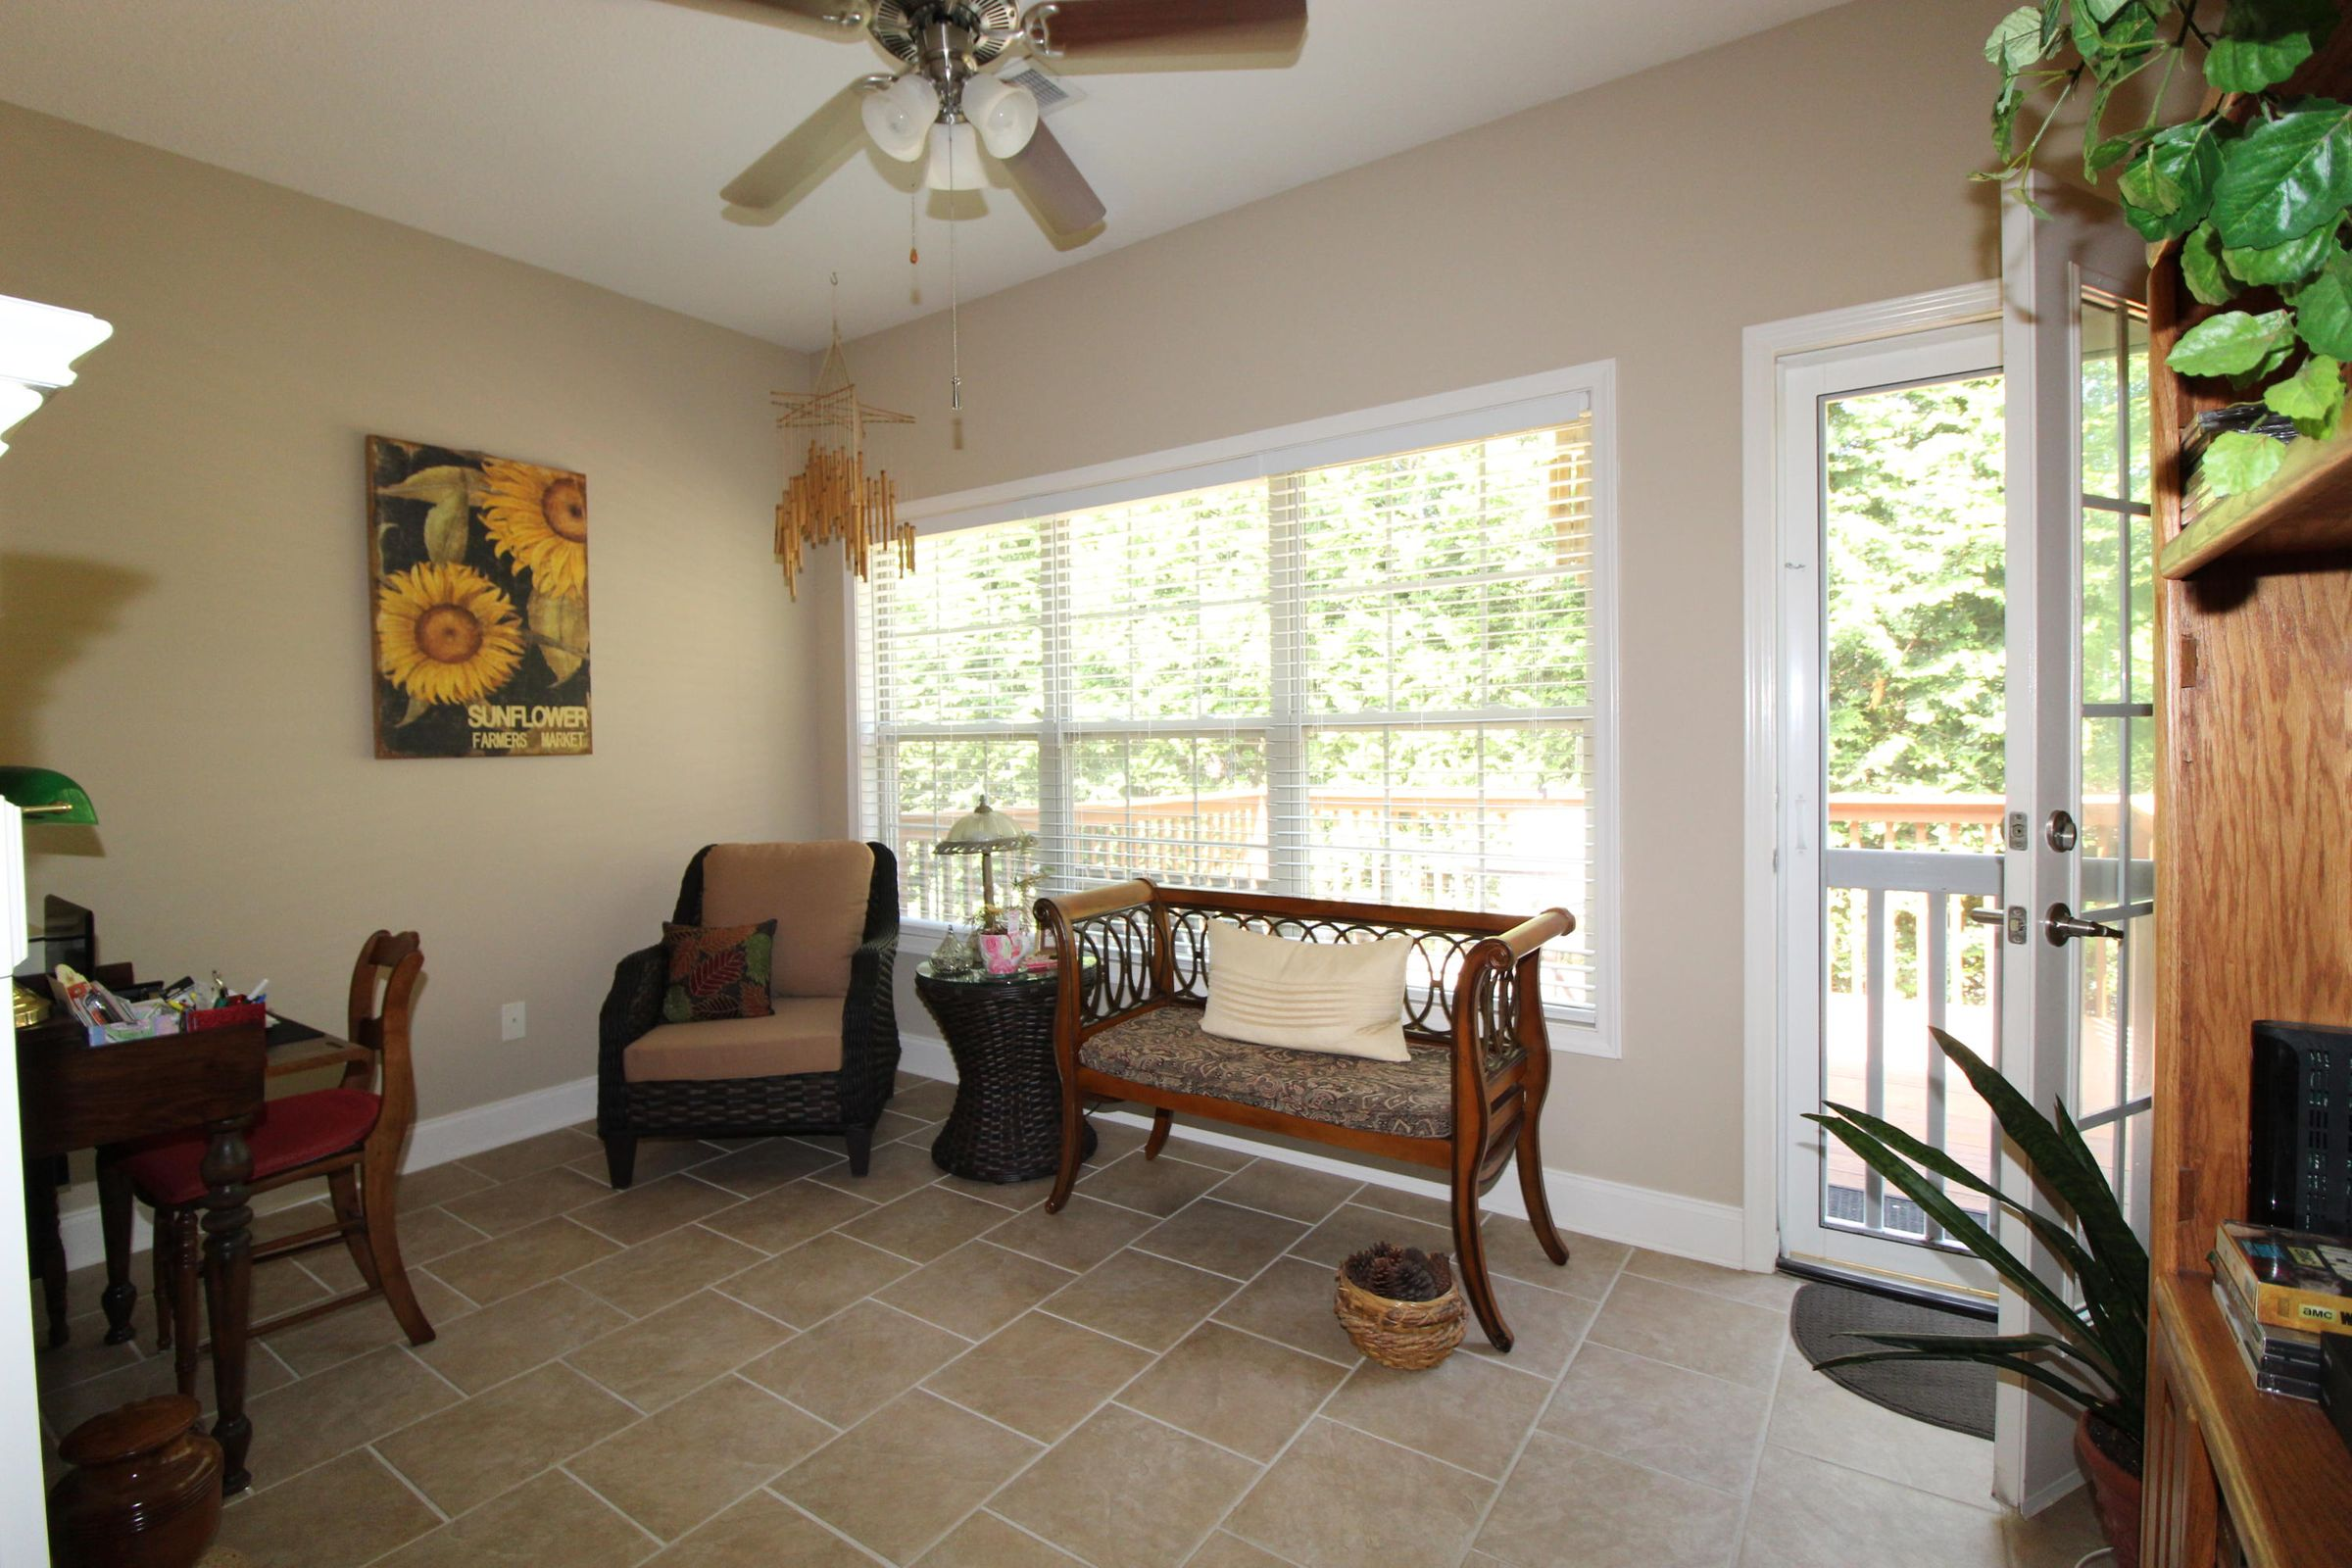 Another view of sunroom